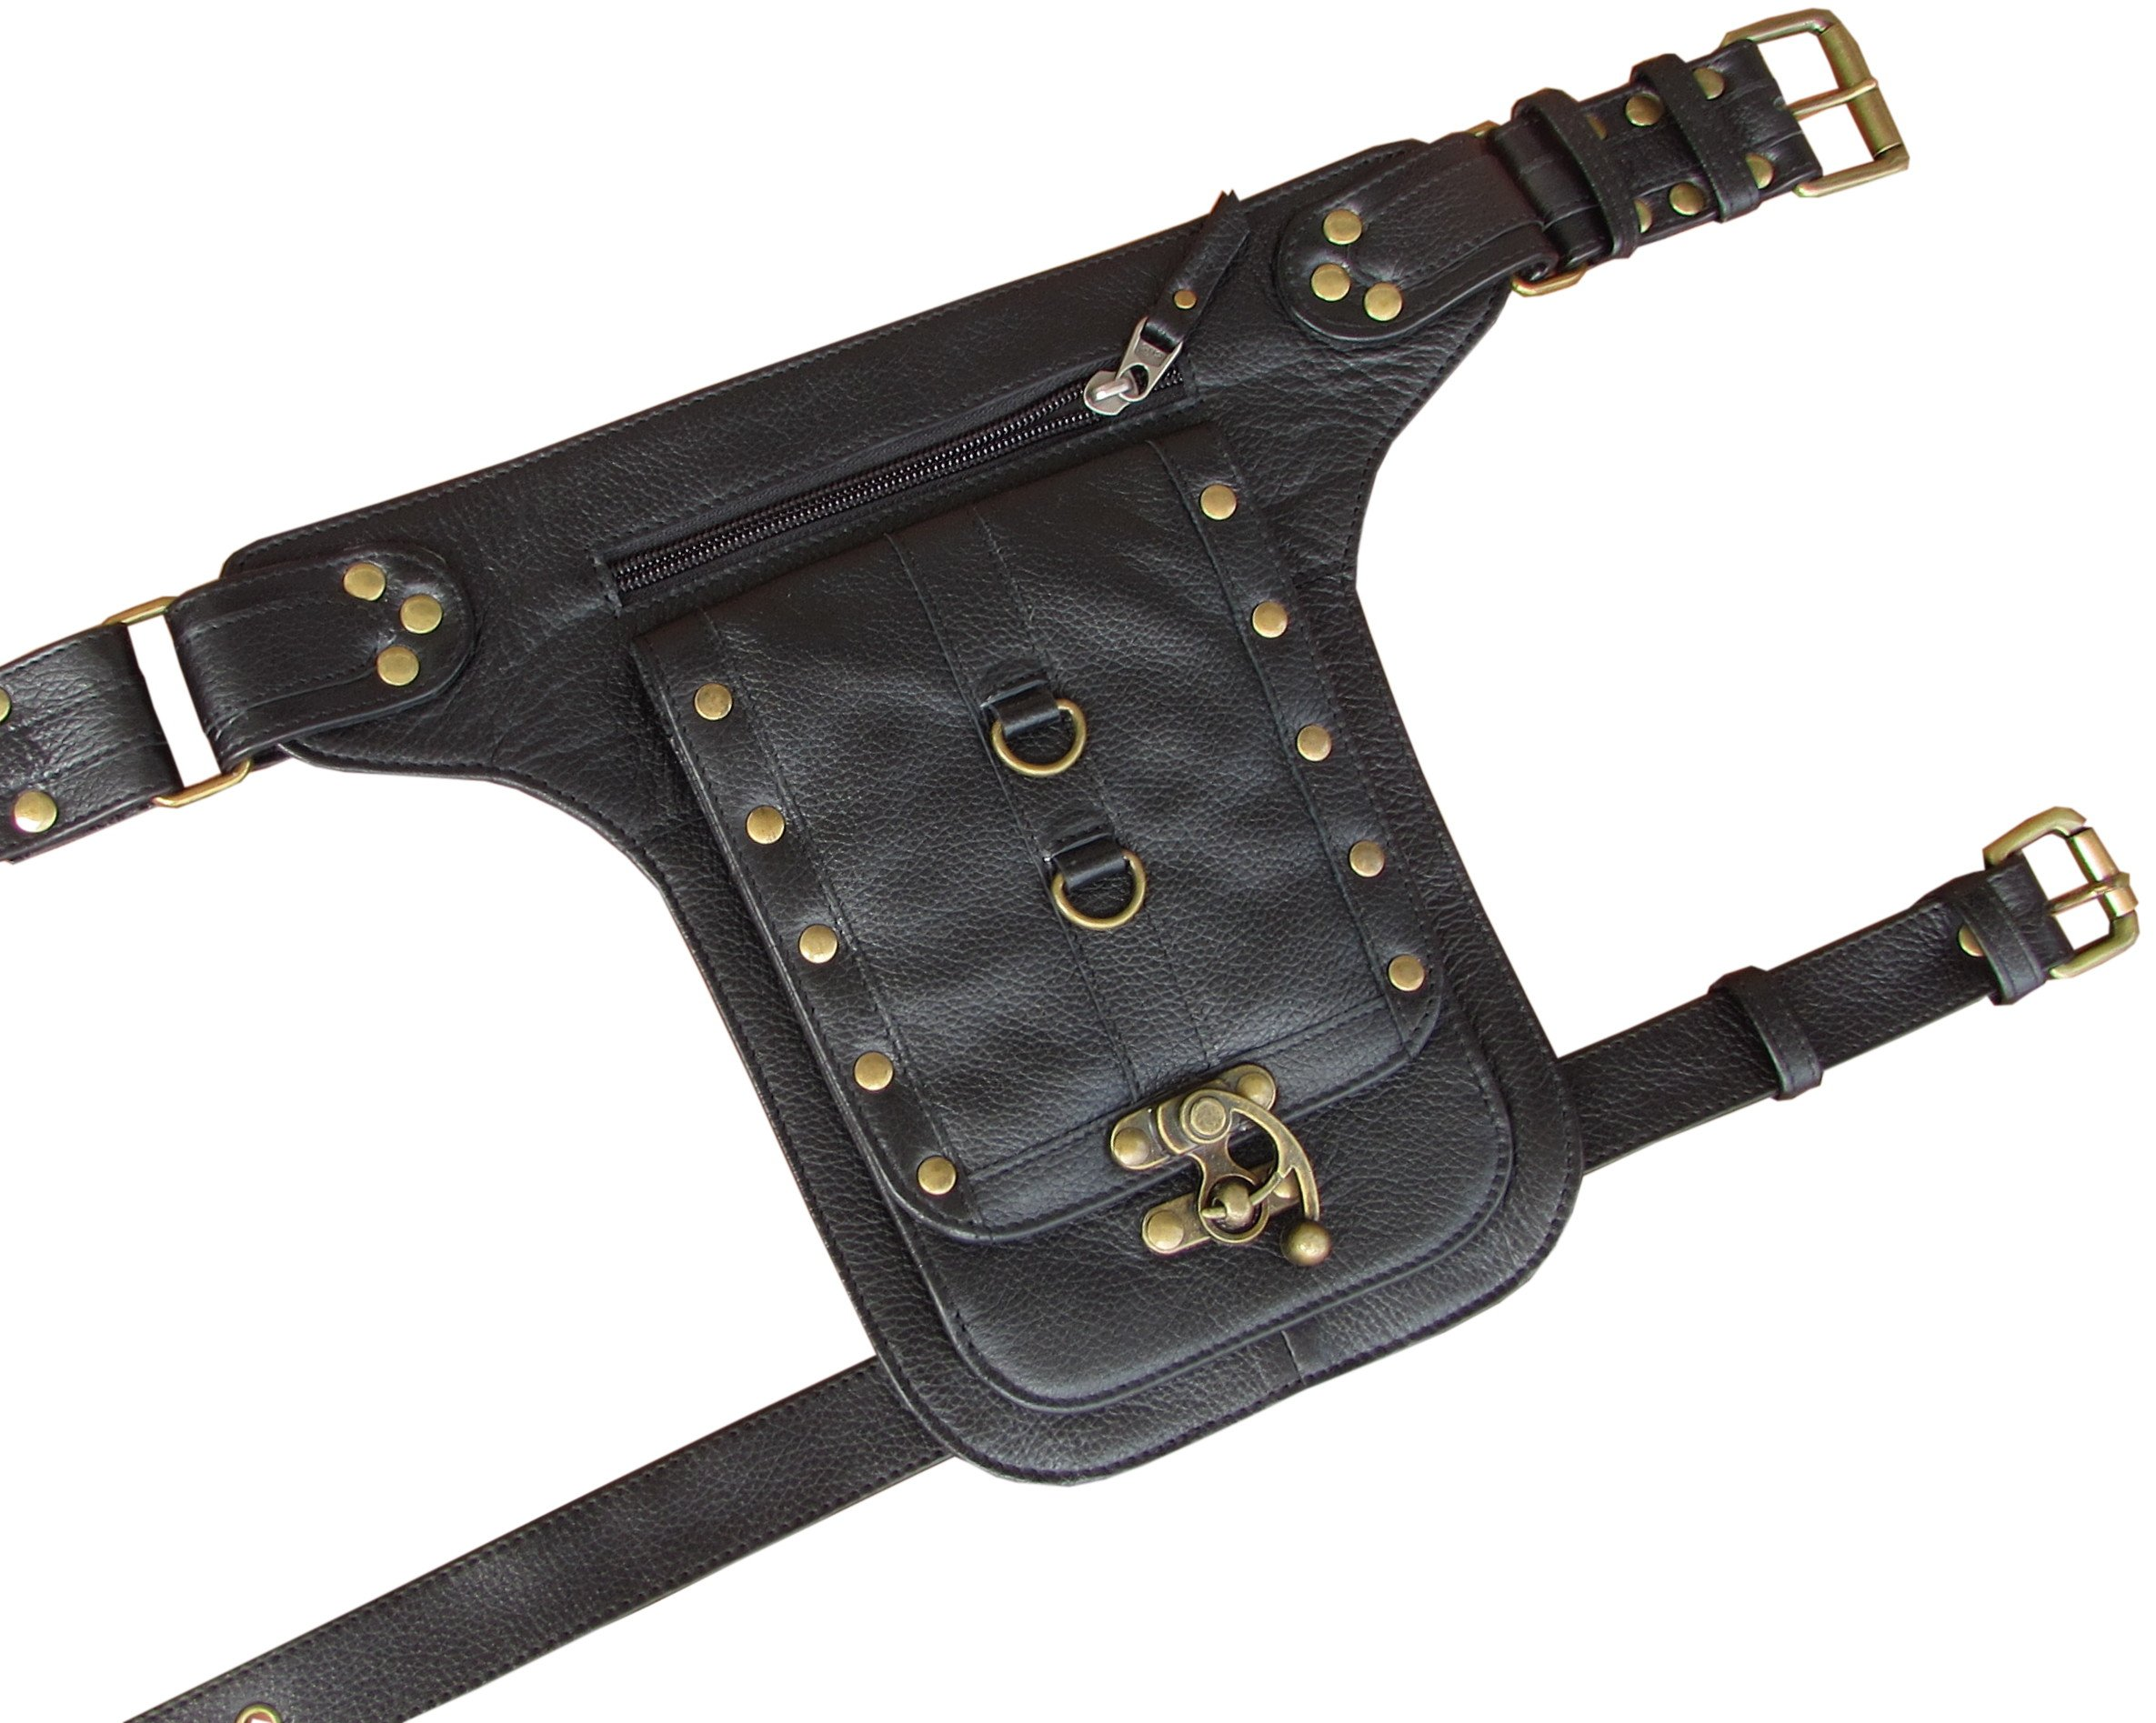 Steampunk Leather Holster Cosplay Thigh Bag with Swing Lock from One Leaf (Black)